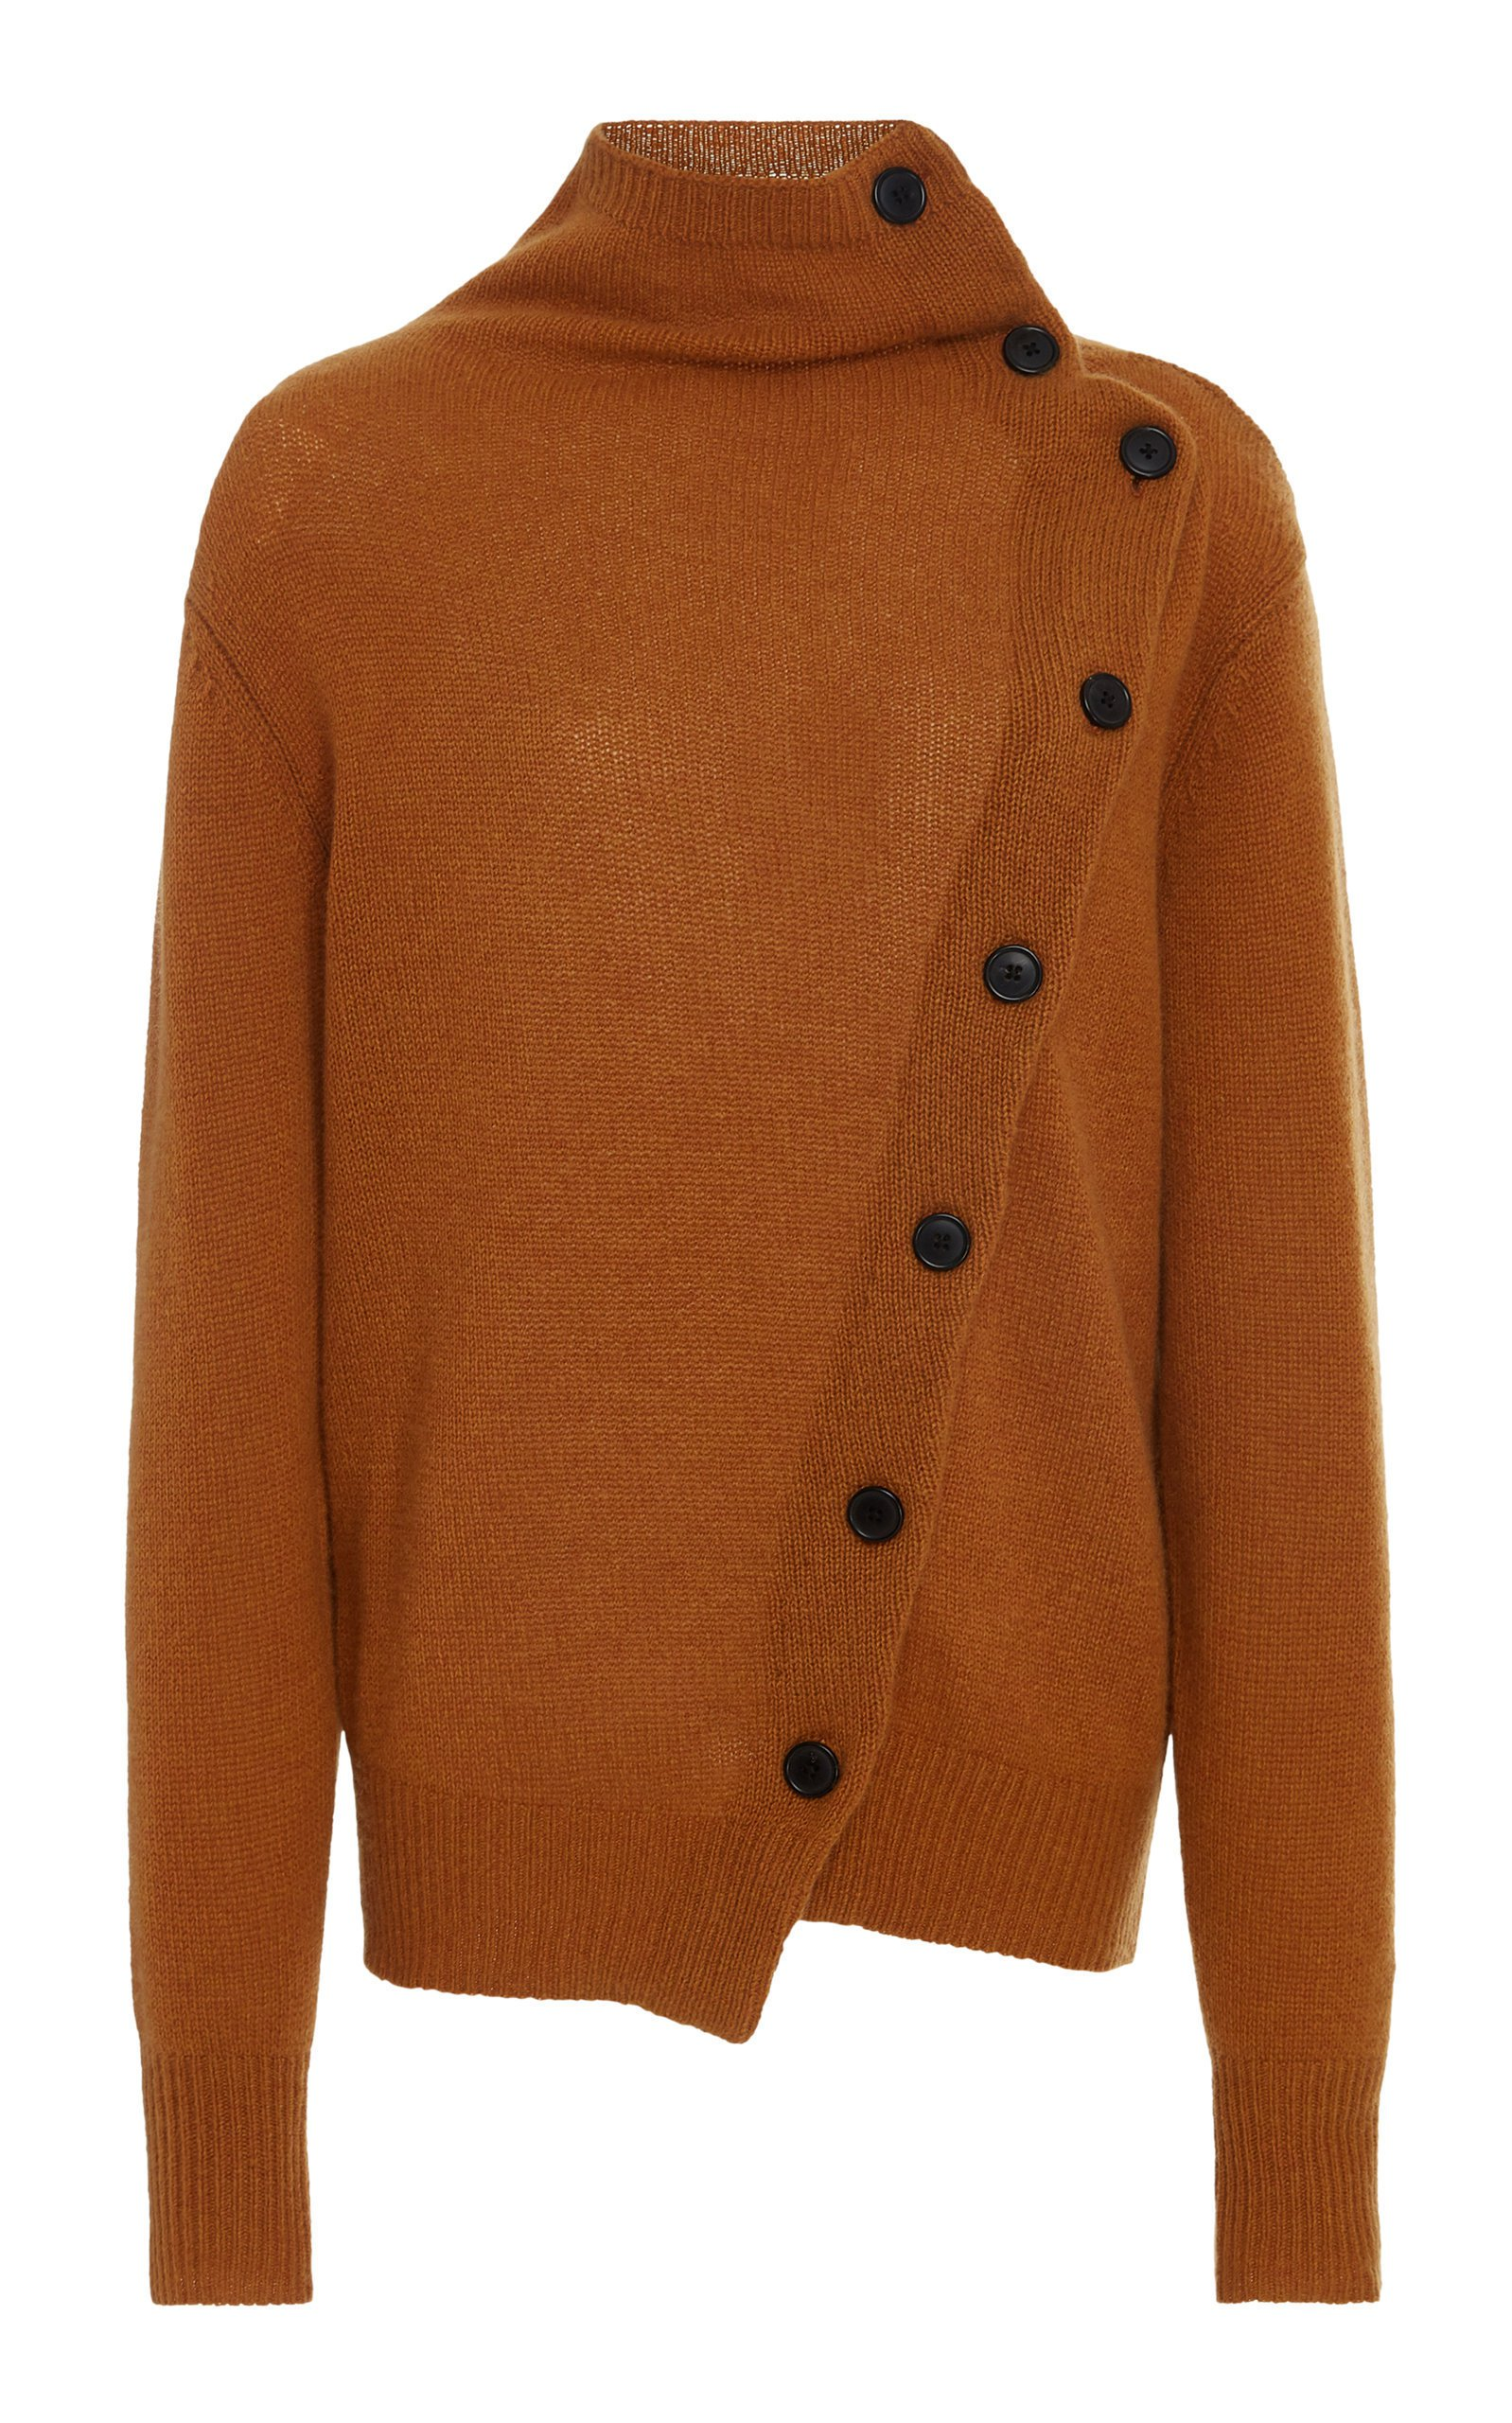 Isabel Marant Chass Button-Detailed Cashmere Turtleneck Sweater